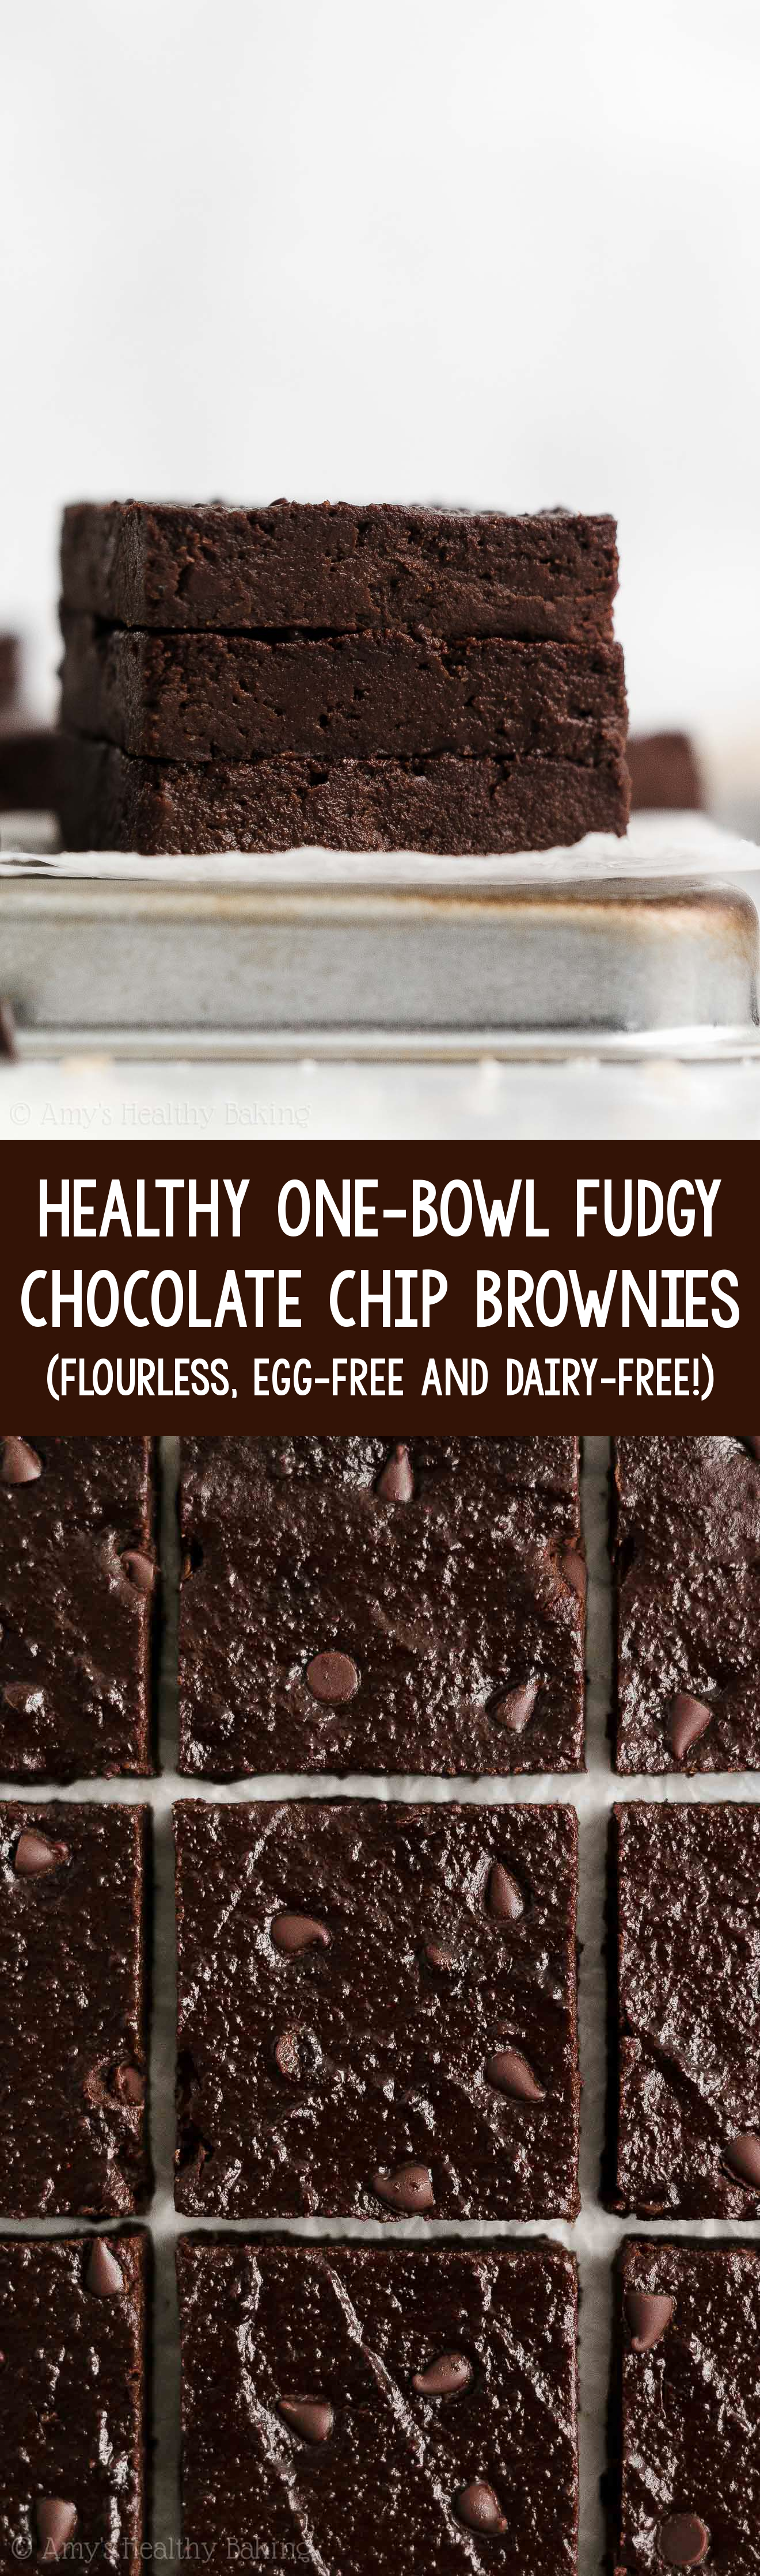 ULTIMATE Best Easy Healthy One-Bowl Fudgy Flourless Gluten Free Vegan Brownies